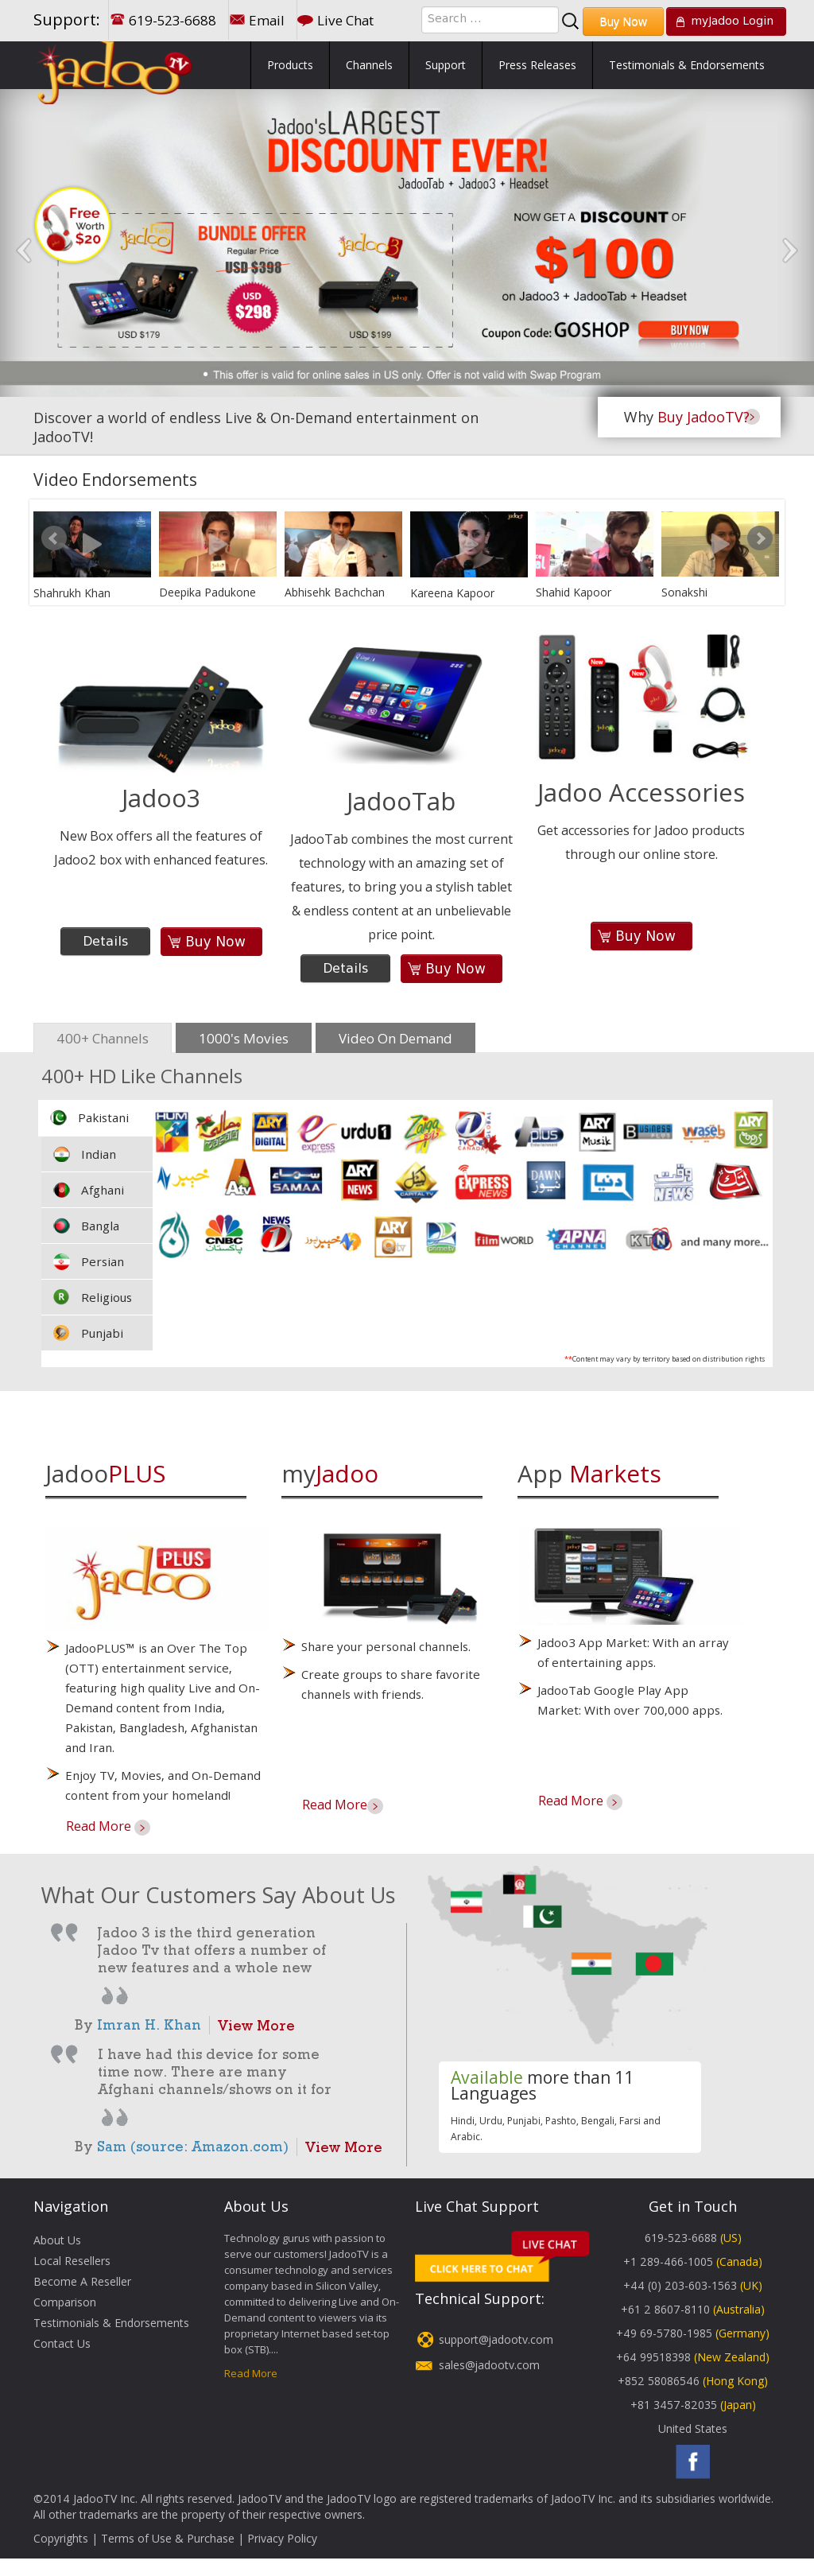 JadooTV Competitors, Revenue and Employees - Owler Company Profile